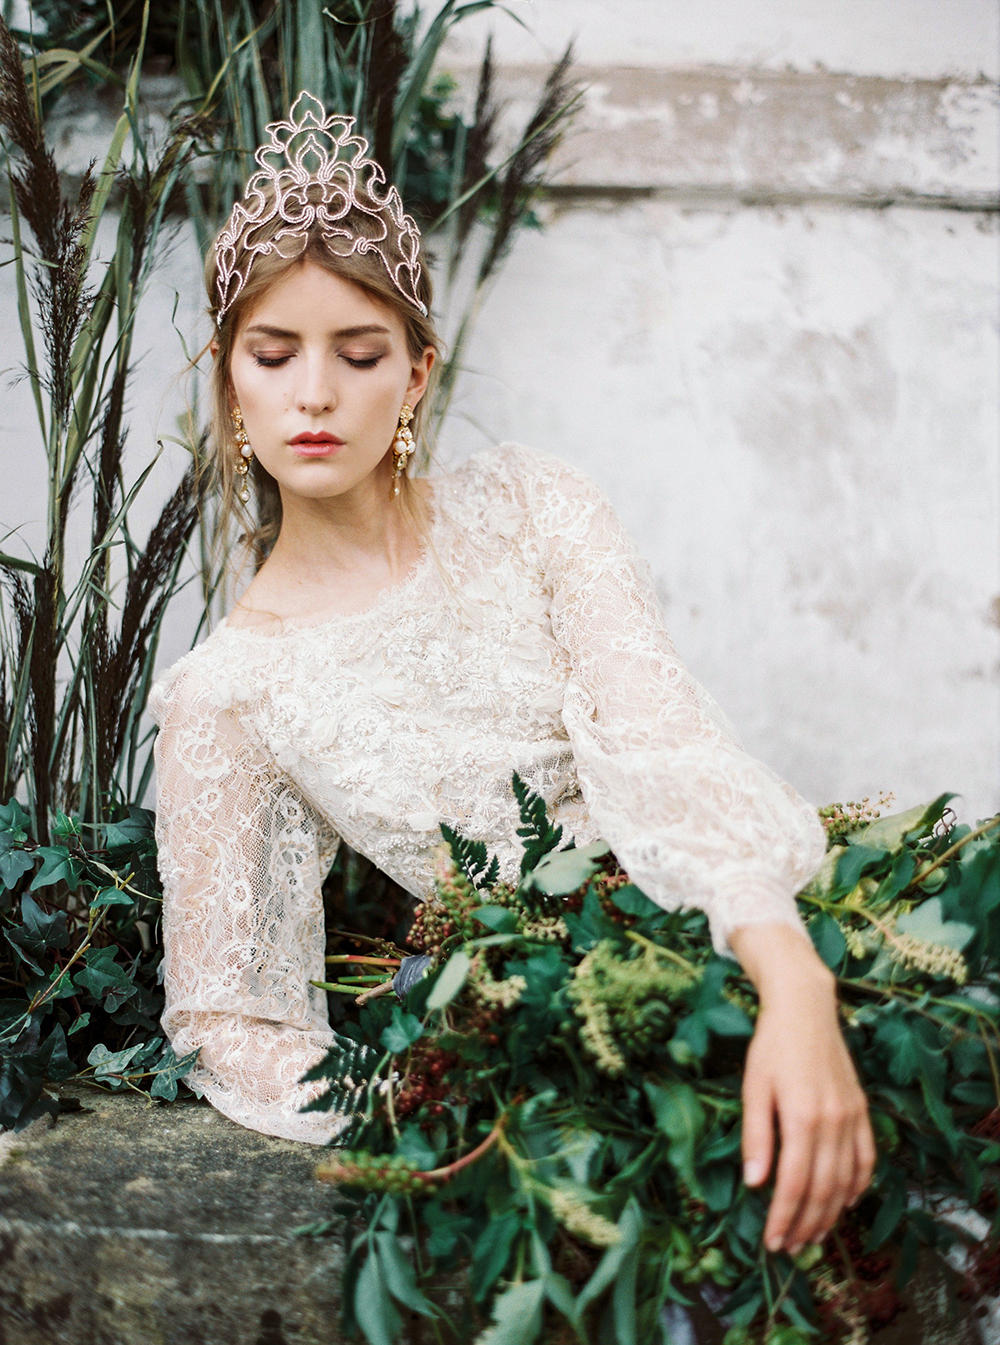 bridal inspiration - photo by Zhenya Savina http://ruffledblog.com/russian-swan-princess-bridal-inspiration